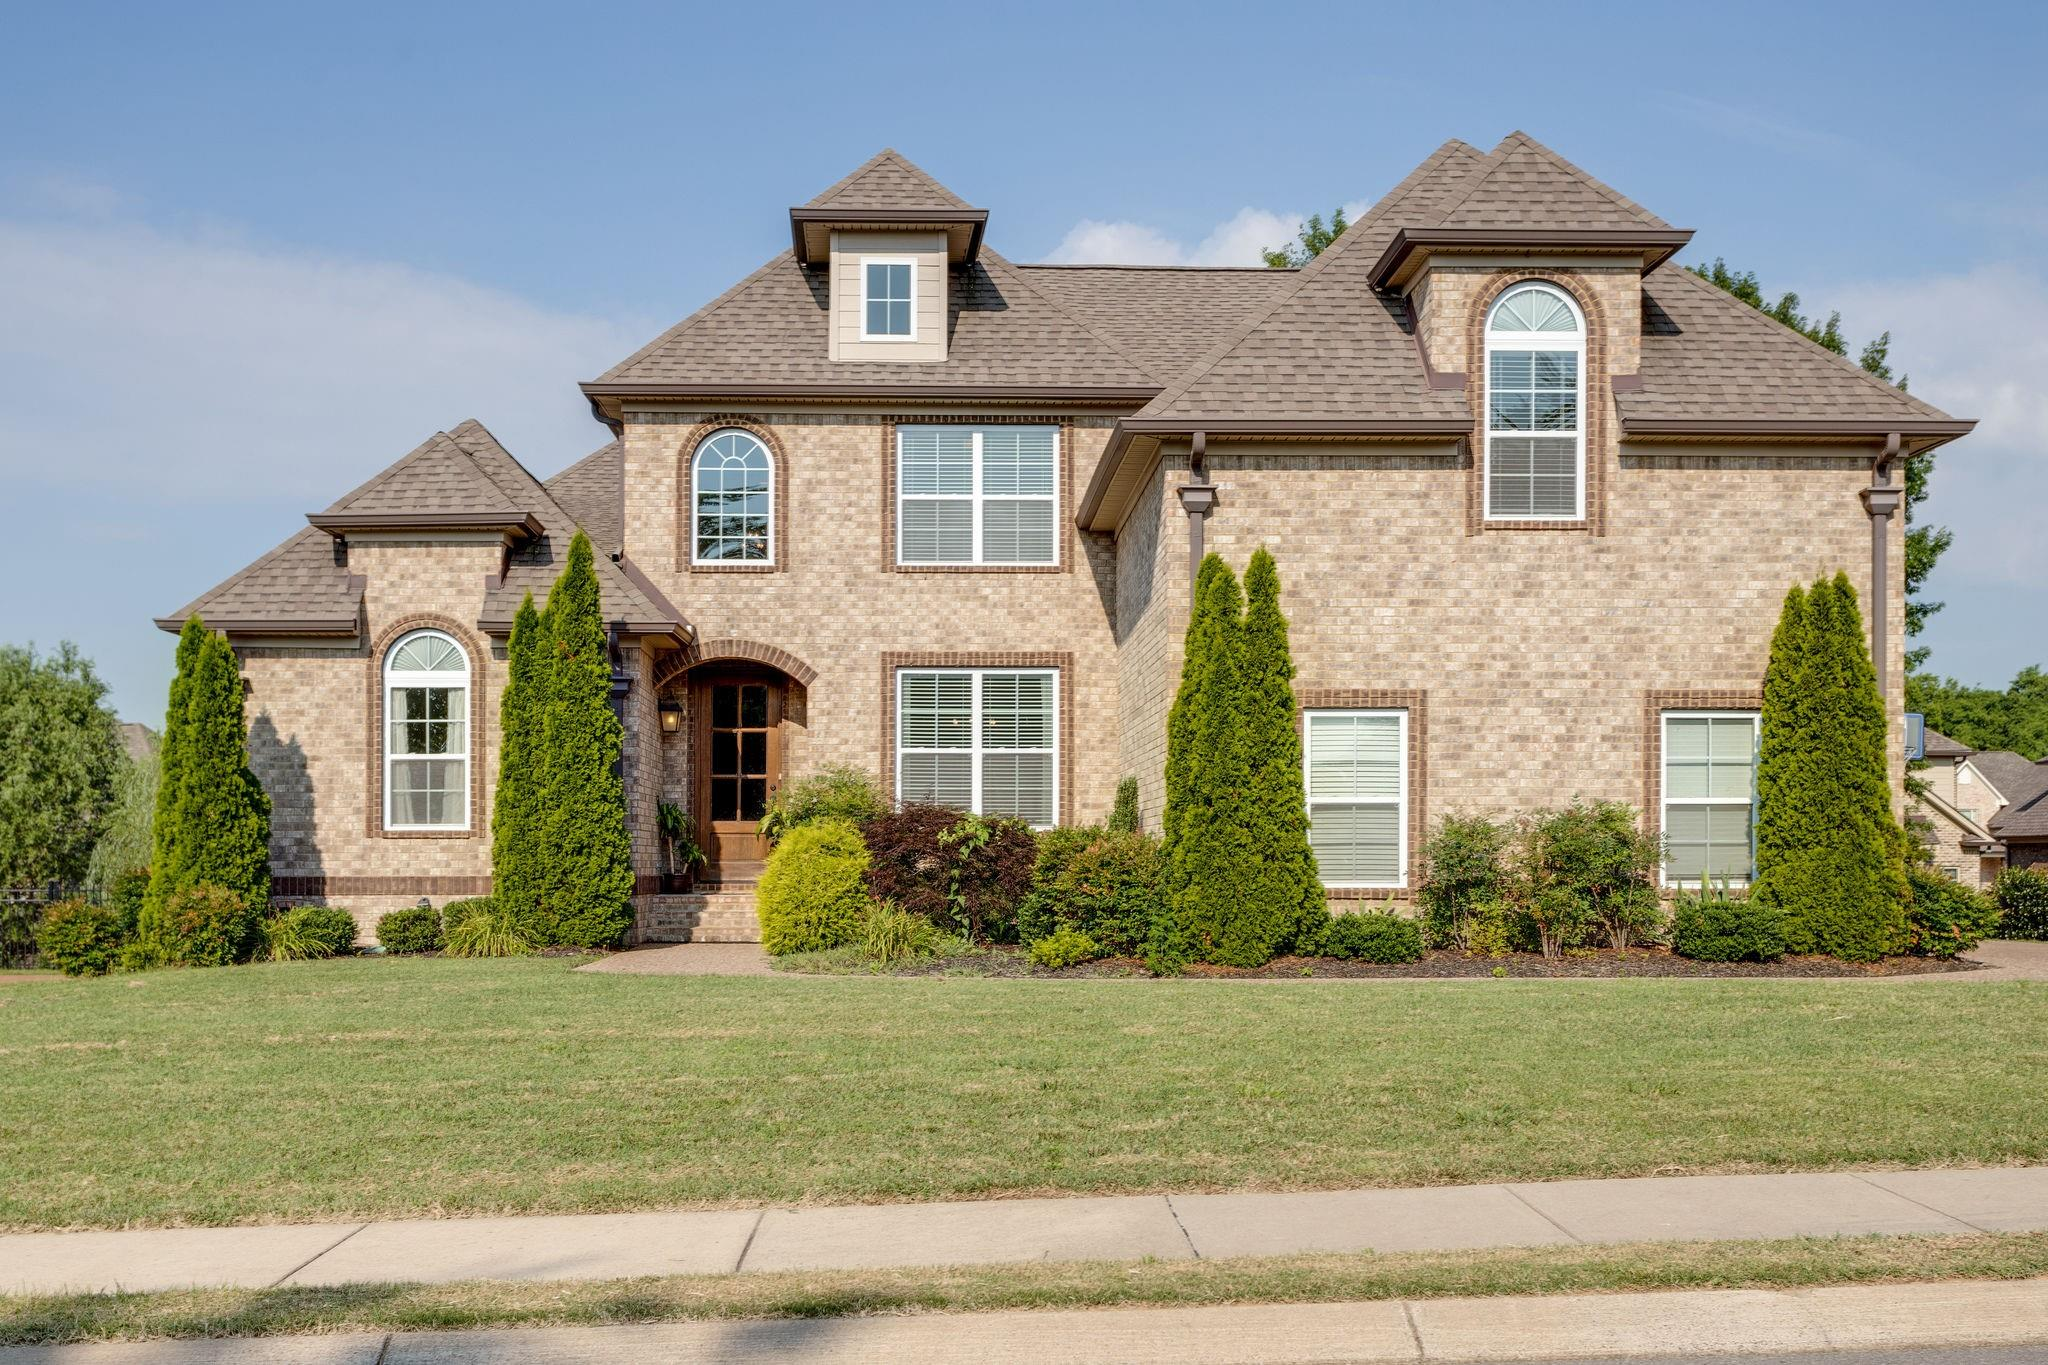 2075 Autumn Ridge Way, Spring Hill, TN 37174 - Spring Hill, TN real estate listing